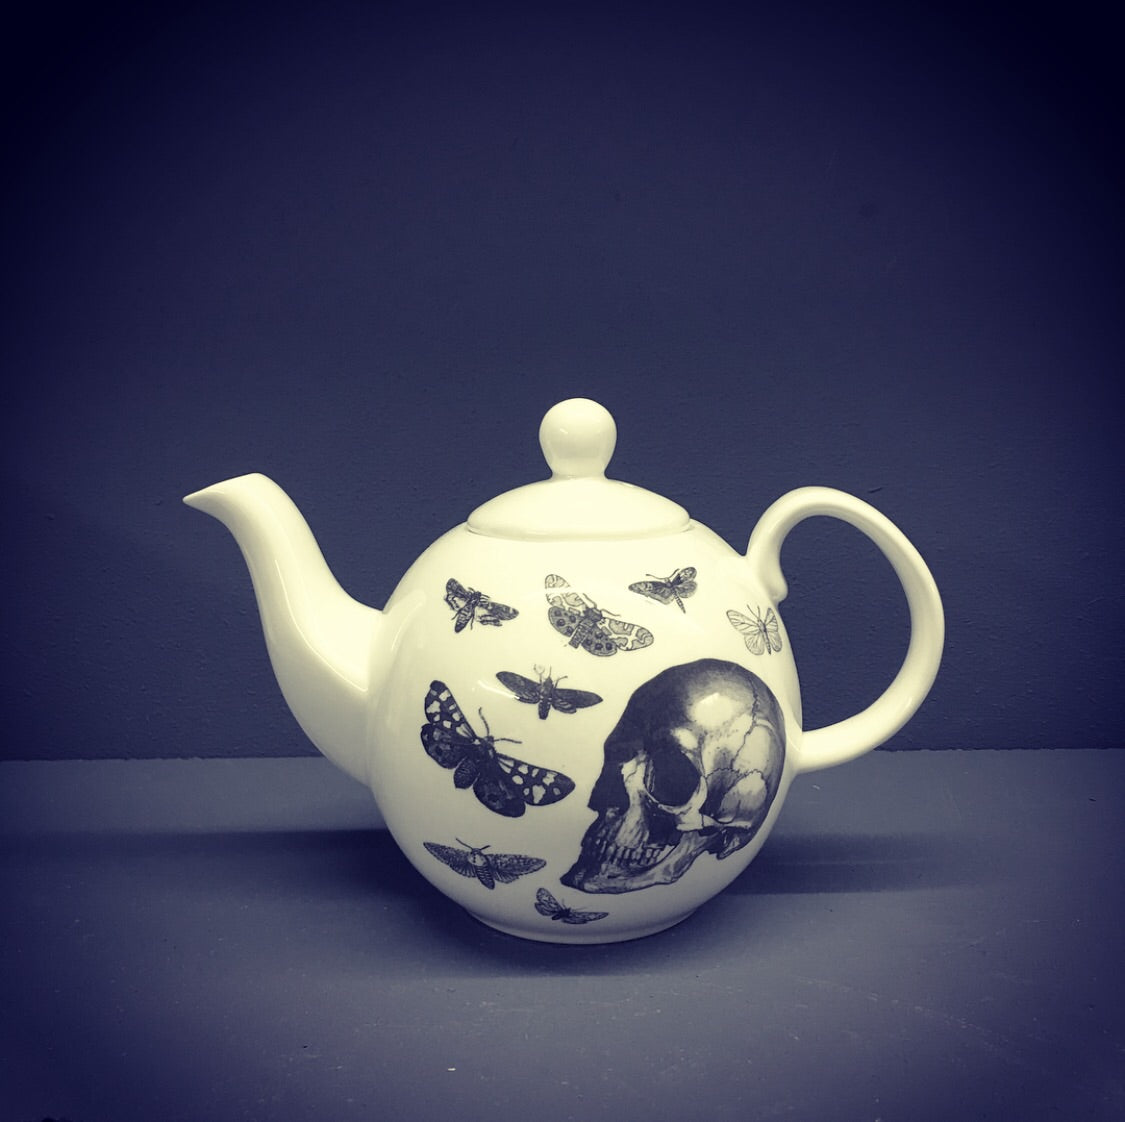 China Teapot - Skull & Moth